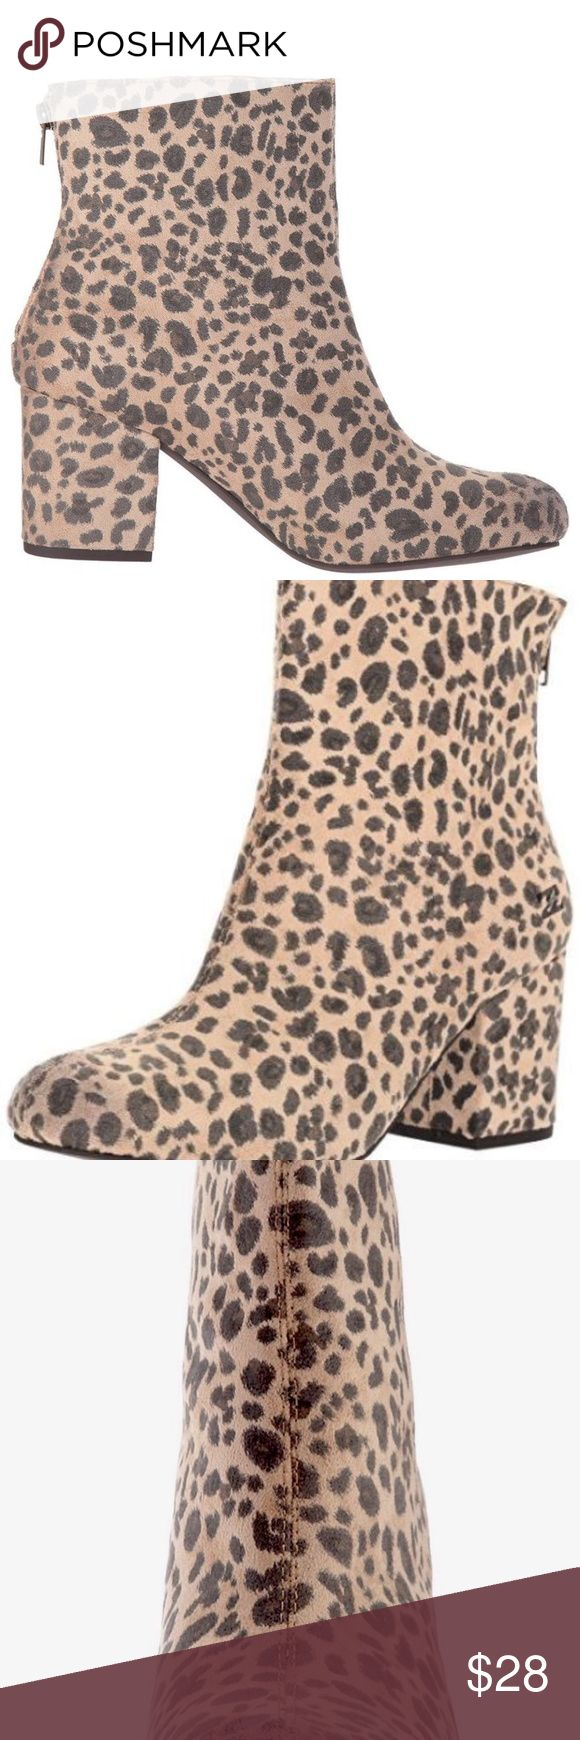 """Billabong Women's Luna Ankle Bootie Size 10 Billabong Women's Luna Ankle Bootie Size 10 Vegan Suede Animal Leopard Print  NEW IN BOX  Textile  Imported  Synthetic sole  Shaft measures approximately 6"""" from arch  Boot opening measures approximately 9.5"""" around  3"""" Block Heel Vegan suede  Retro boot All Over Print Color -Ani Beige Black Smoke & Pet Free Billabong Shoes Ankle Boots & Booties"""